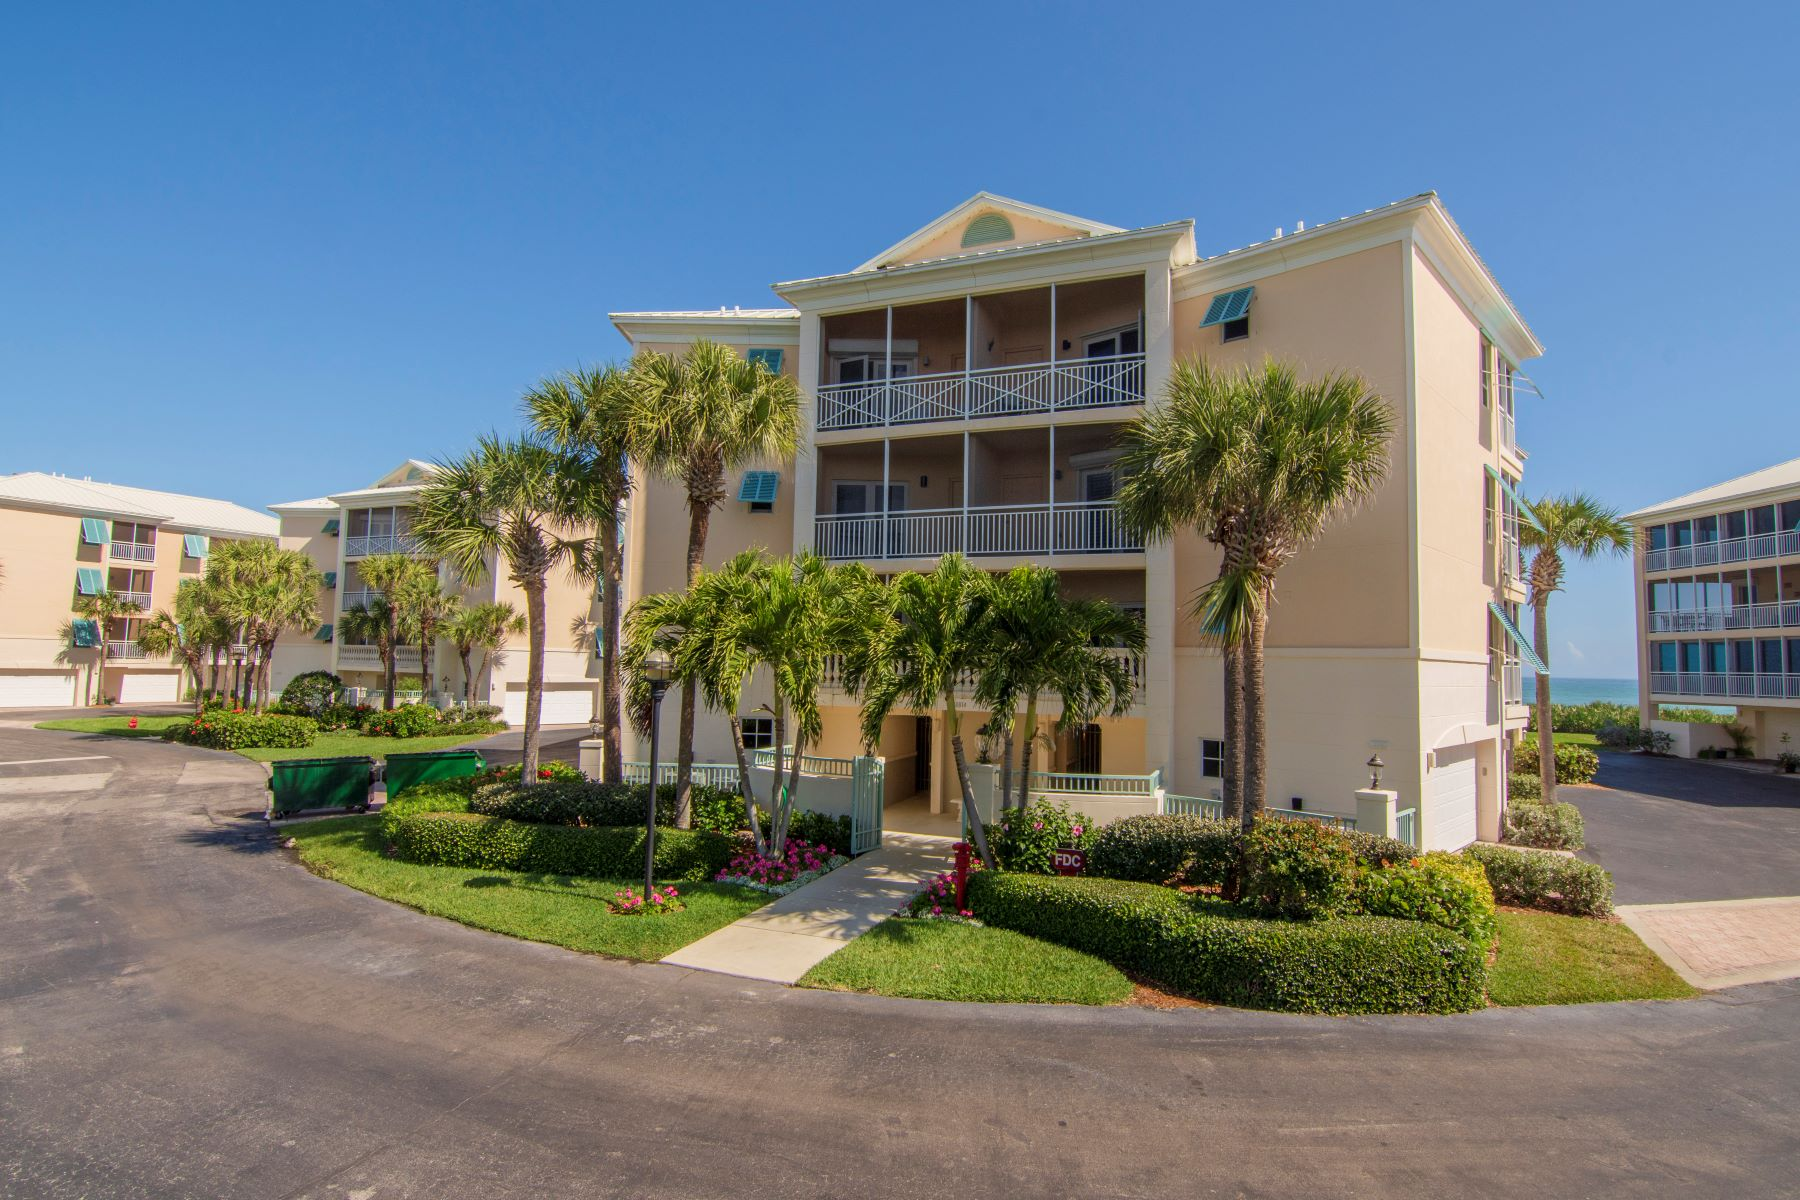 Property for Sale at Sea Oaks Beach Villa 8814 S Sea Oaks Way 304 Vero Beach, Florida 32963 United States